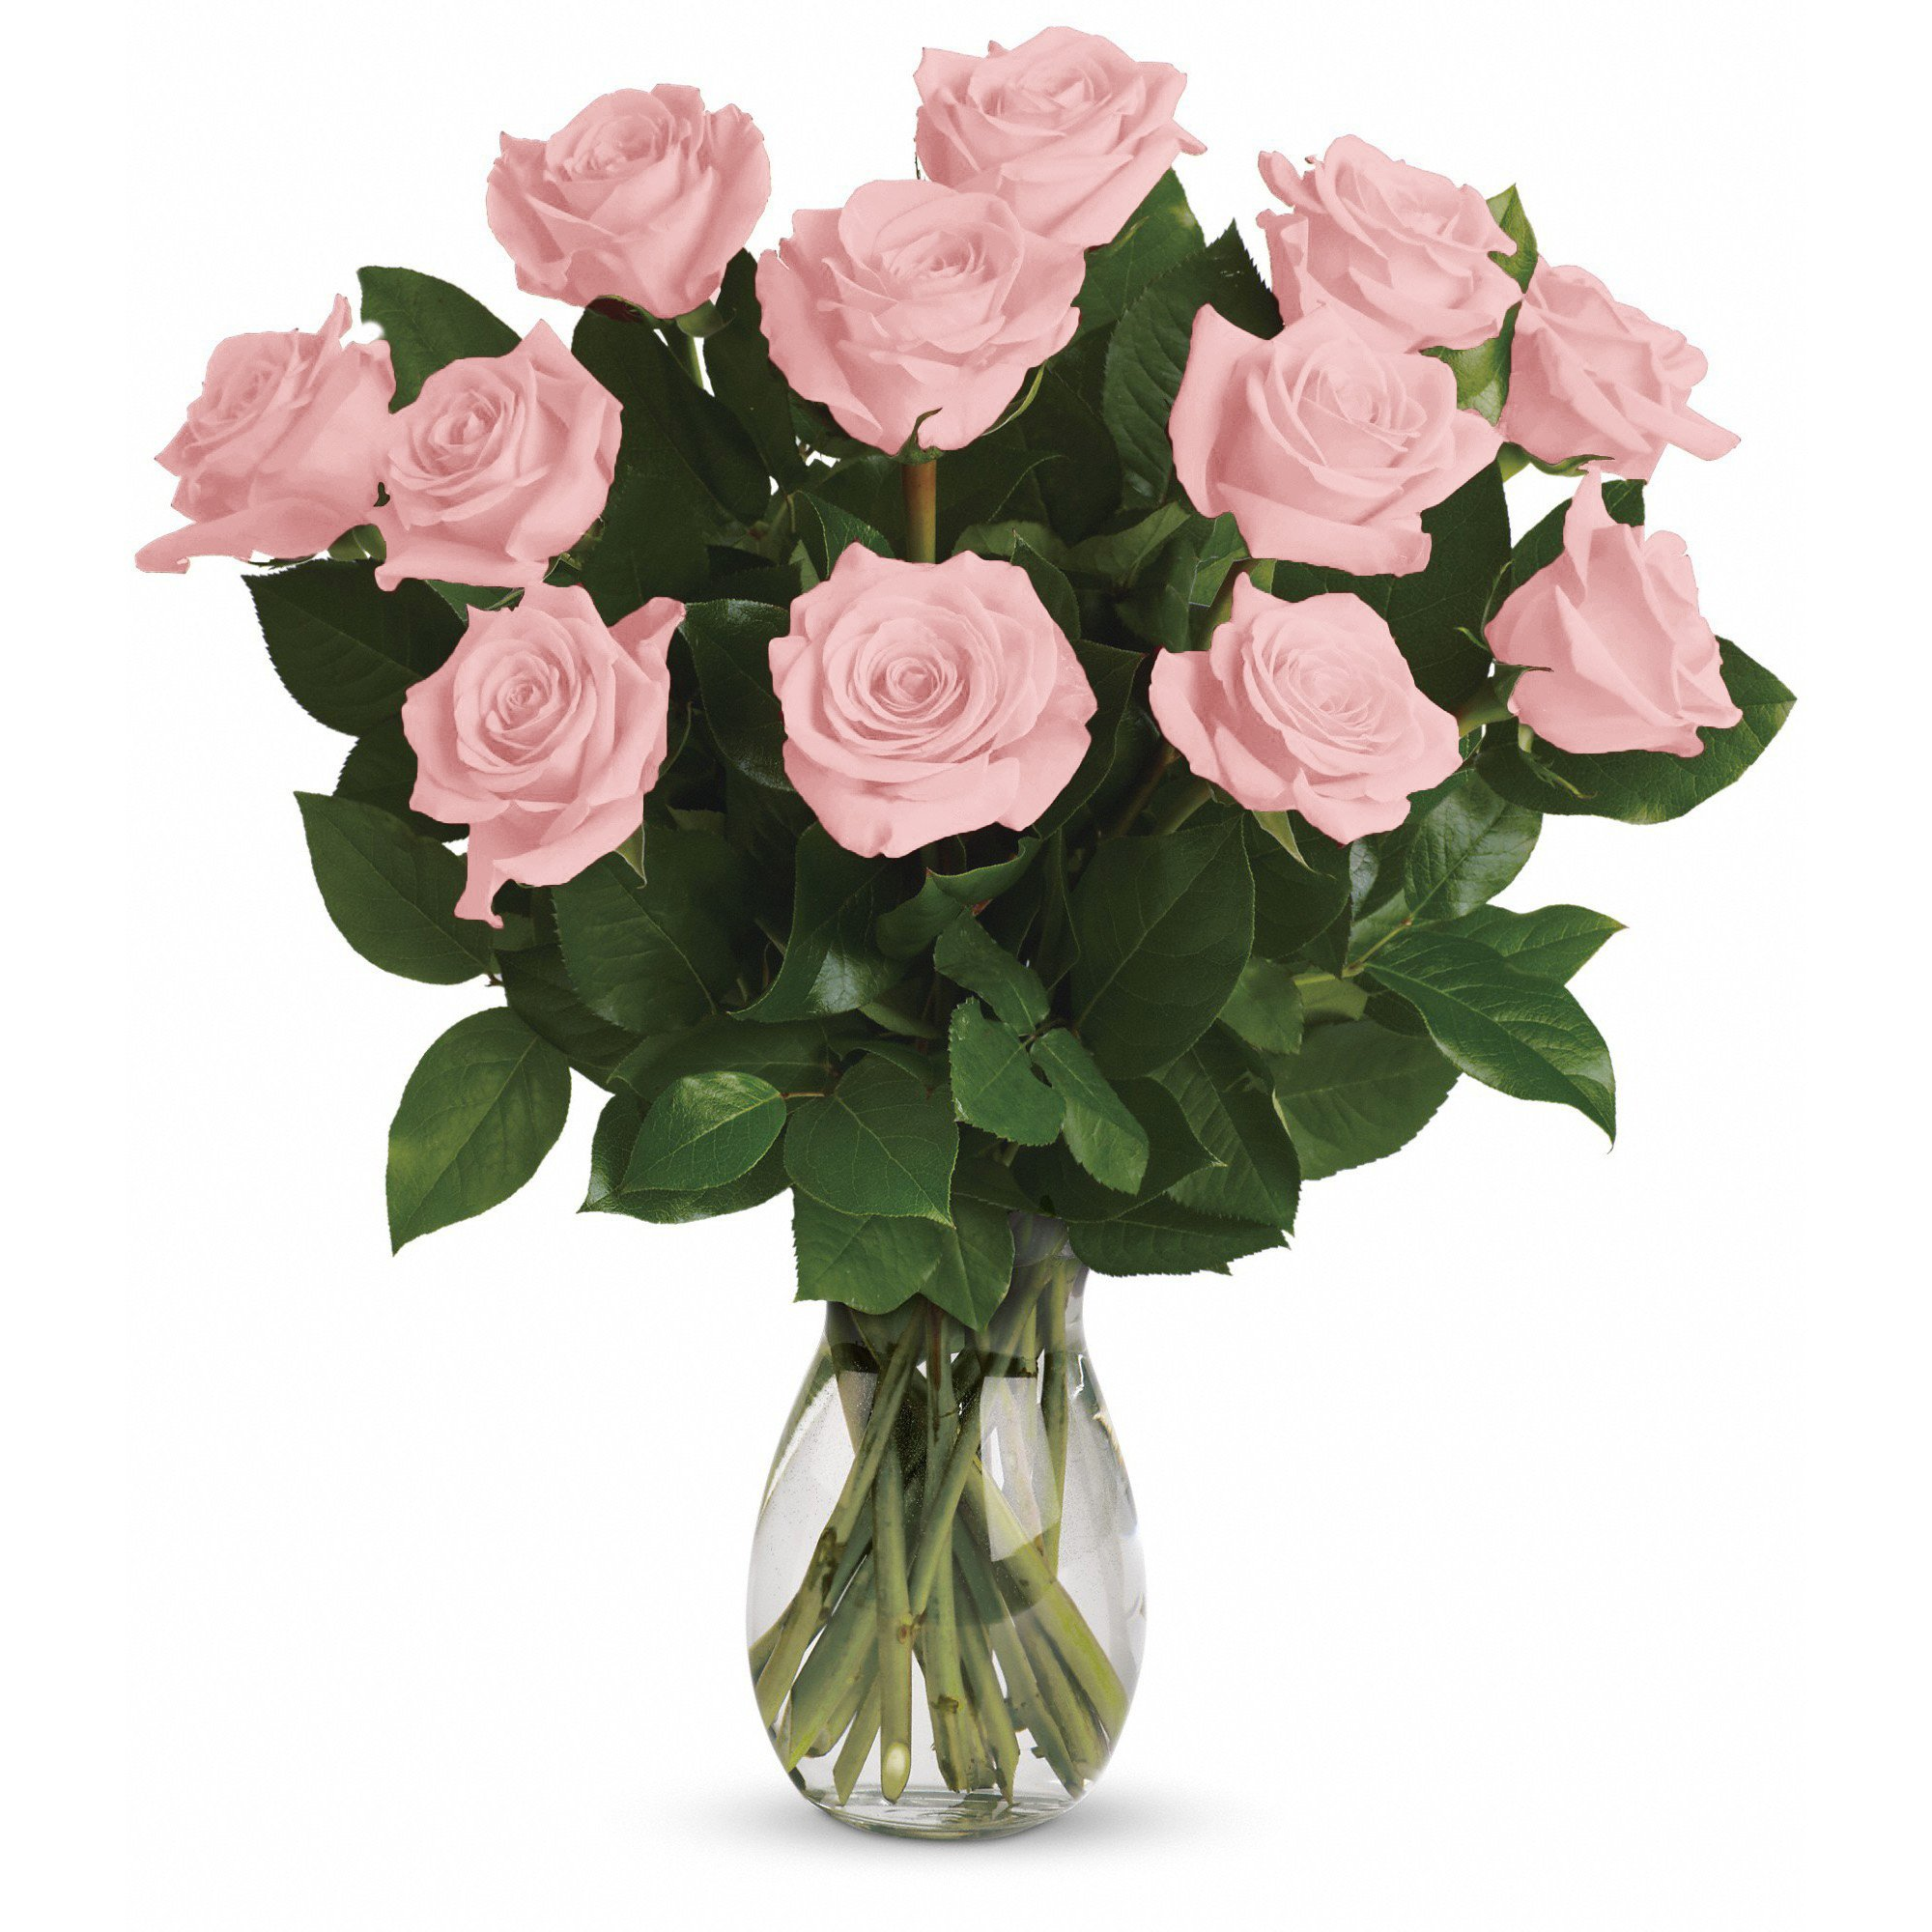 Farm Direct Rose Bouquet of 12 Fresh Cut Roses with Vase (Light Pink)